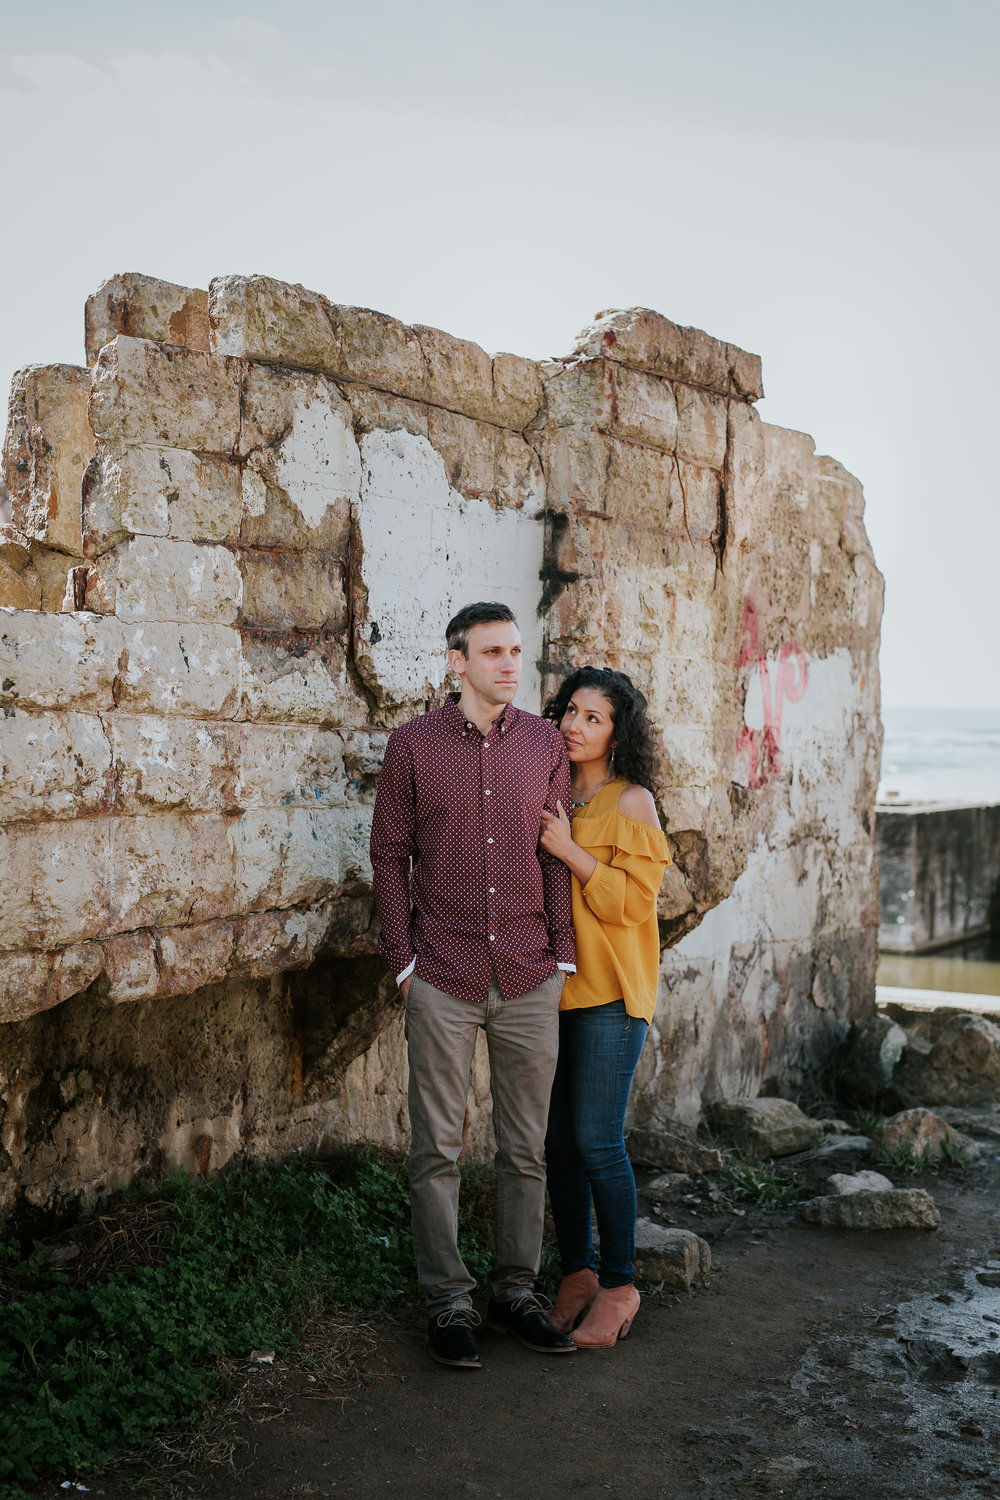 Ada and dave - san-francisco-engagement-golden-gate-park-sutro-baths-126.jpg